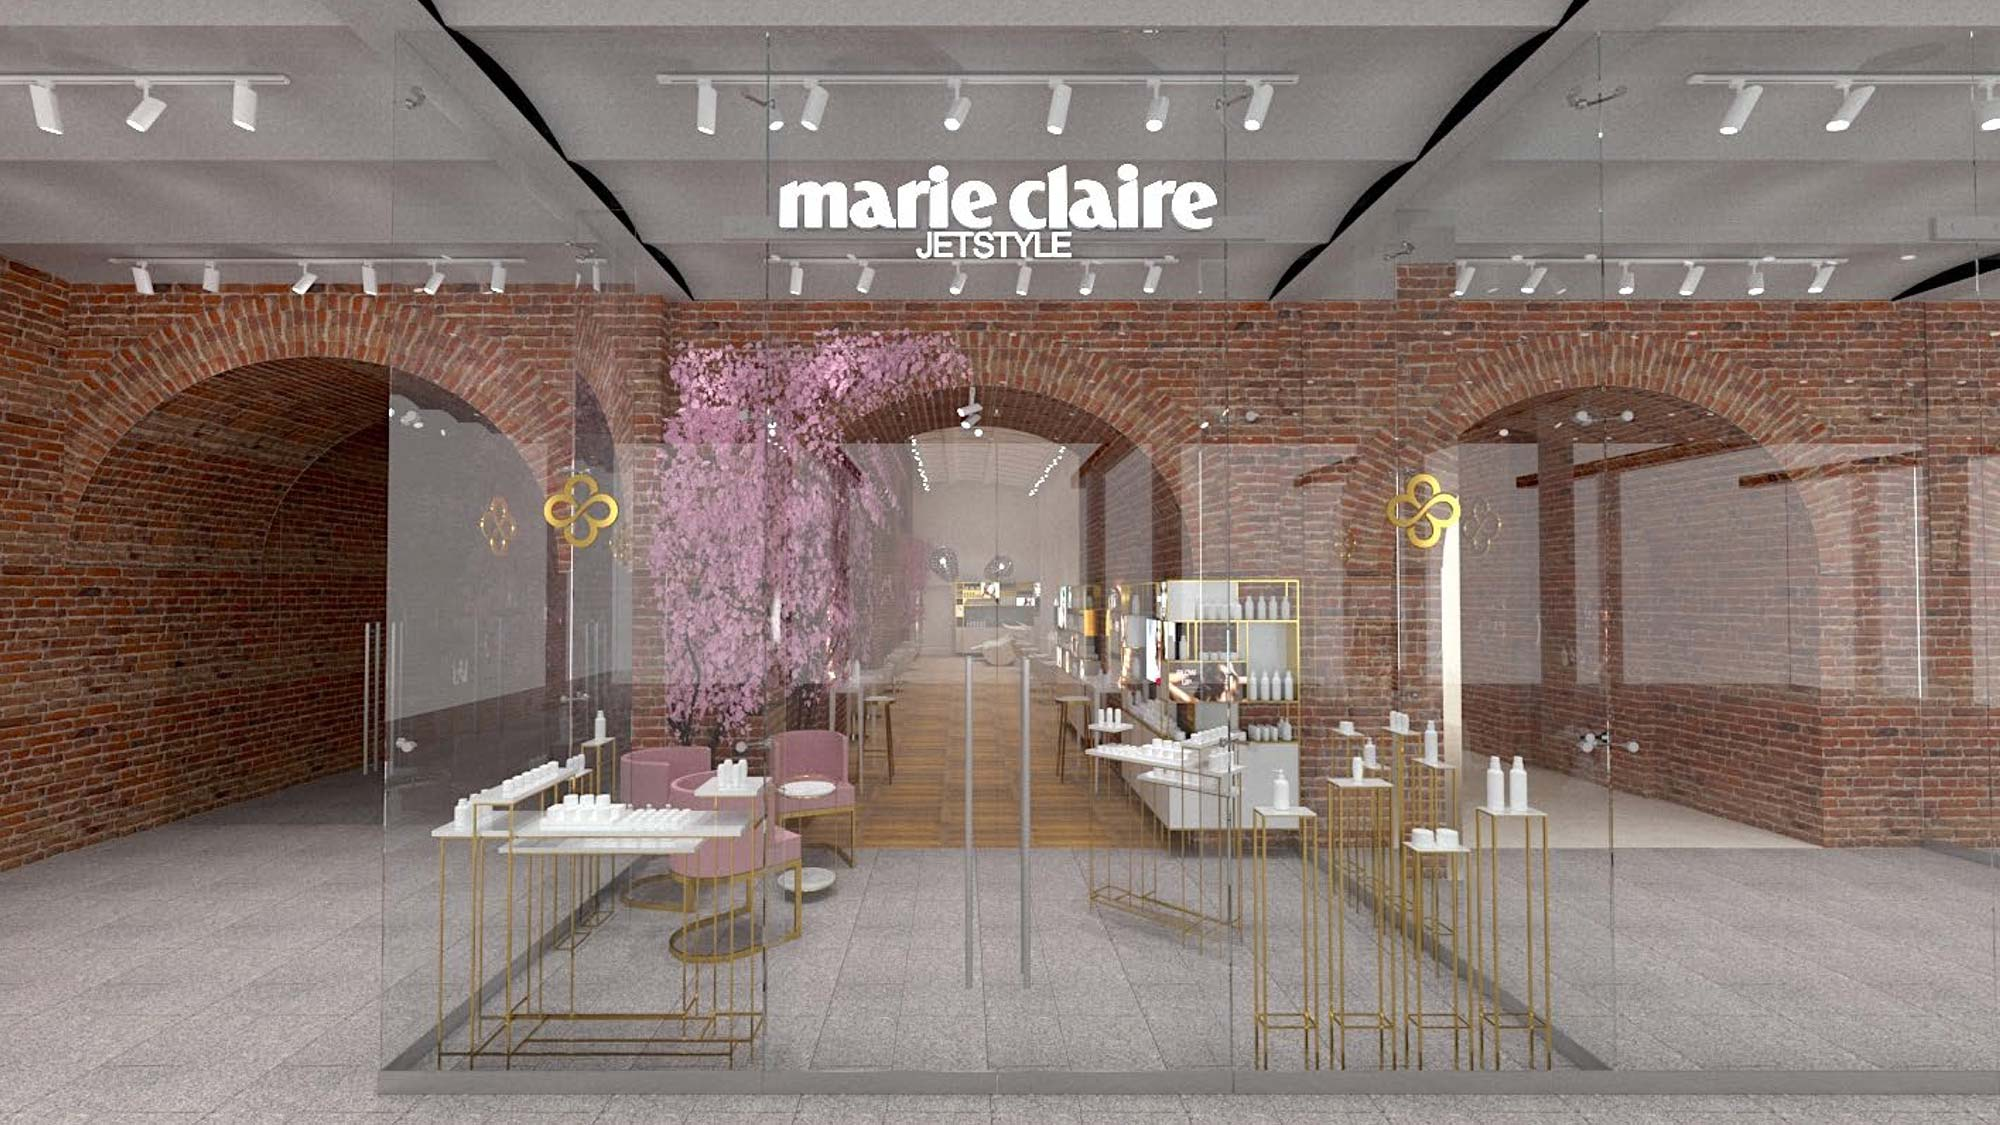 Marie Claire Jet Style has officially launched